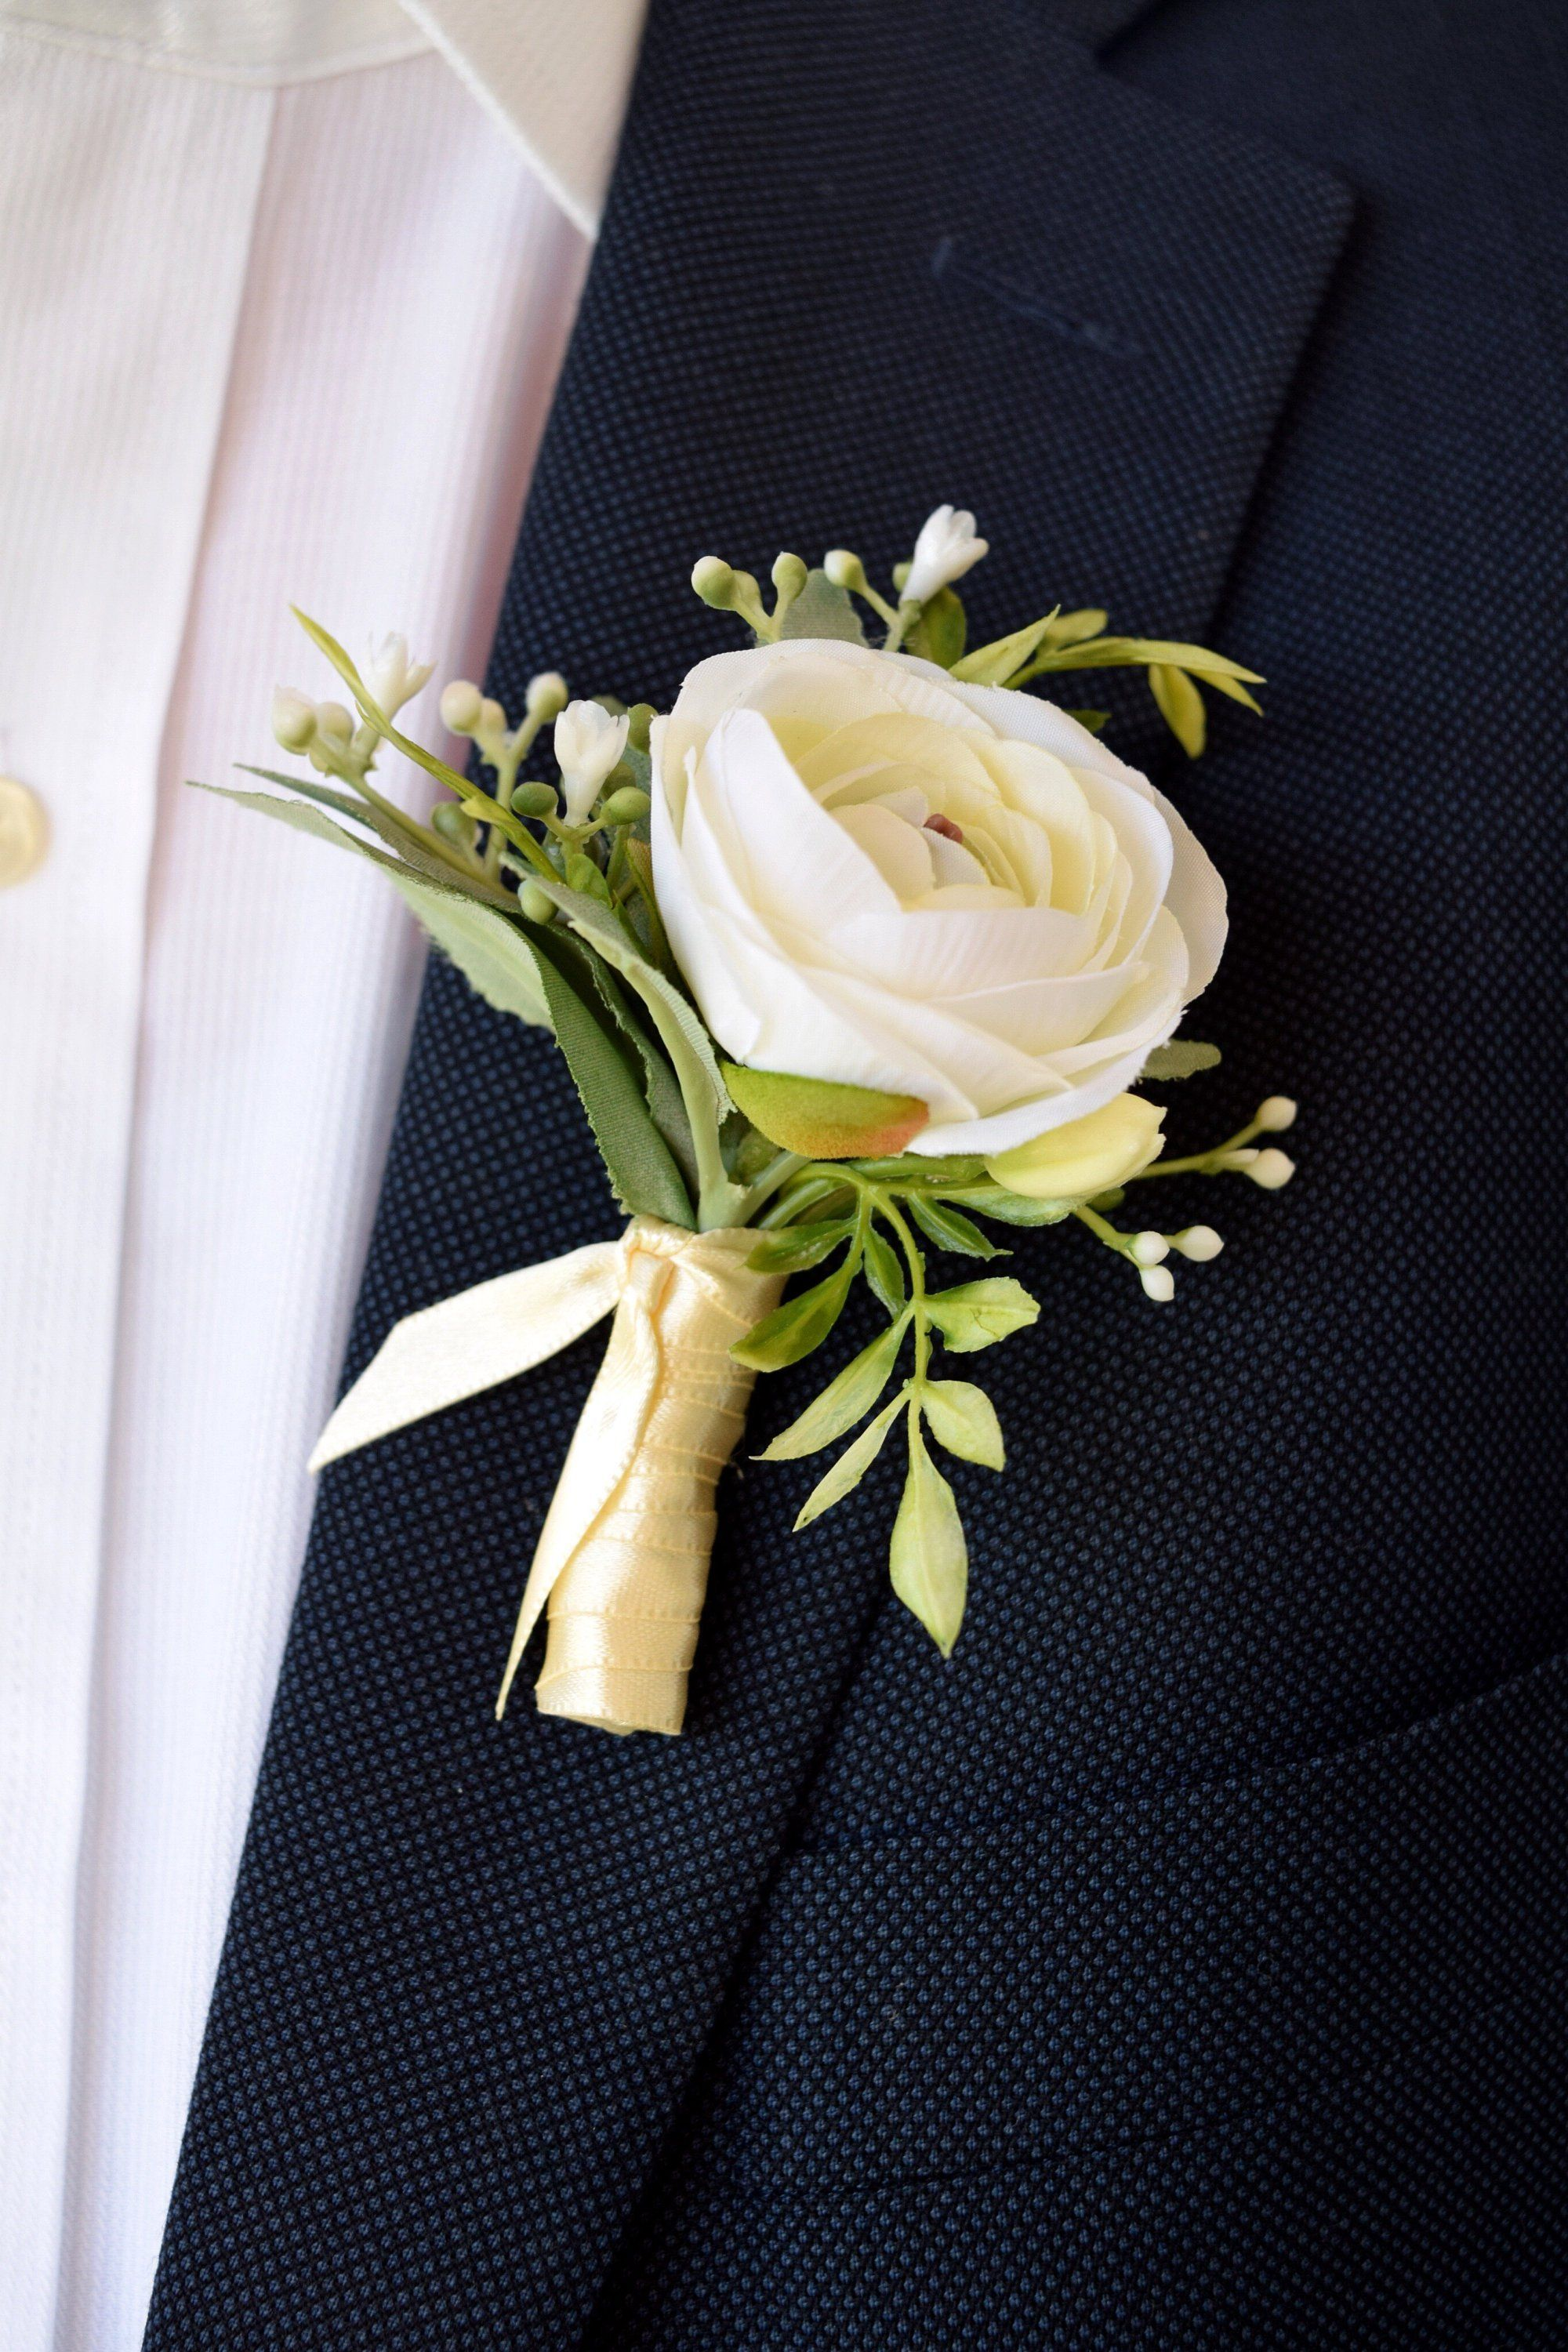 Lapel Flowers Groomsmen Pink Boutonniere Boutonnieres Father Of The Bride Wedding Boutonniere Ranunculus Groom Boutonnieres Prom